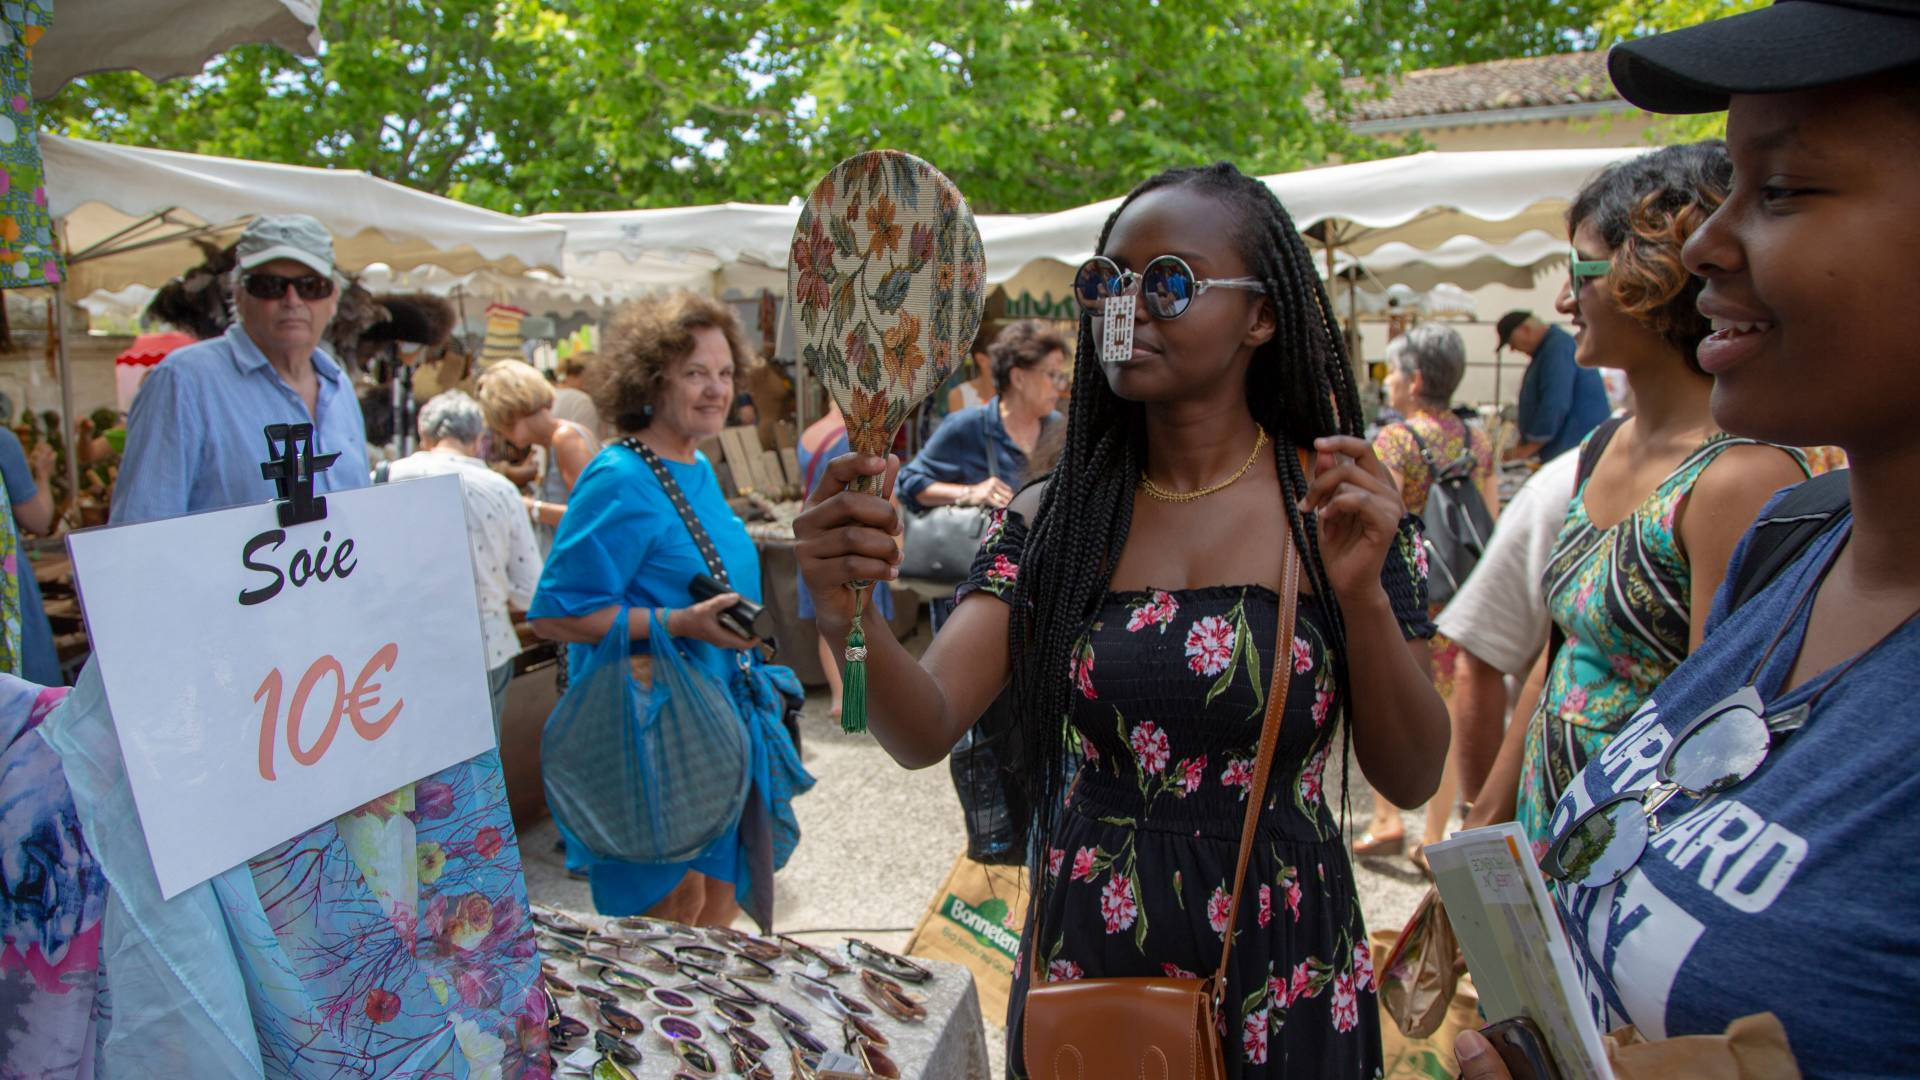 Student trying on sunglasses in outdoor market in France